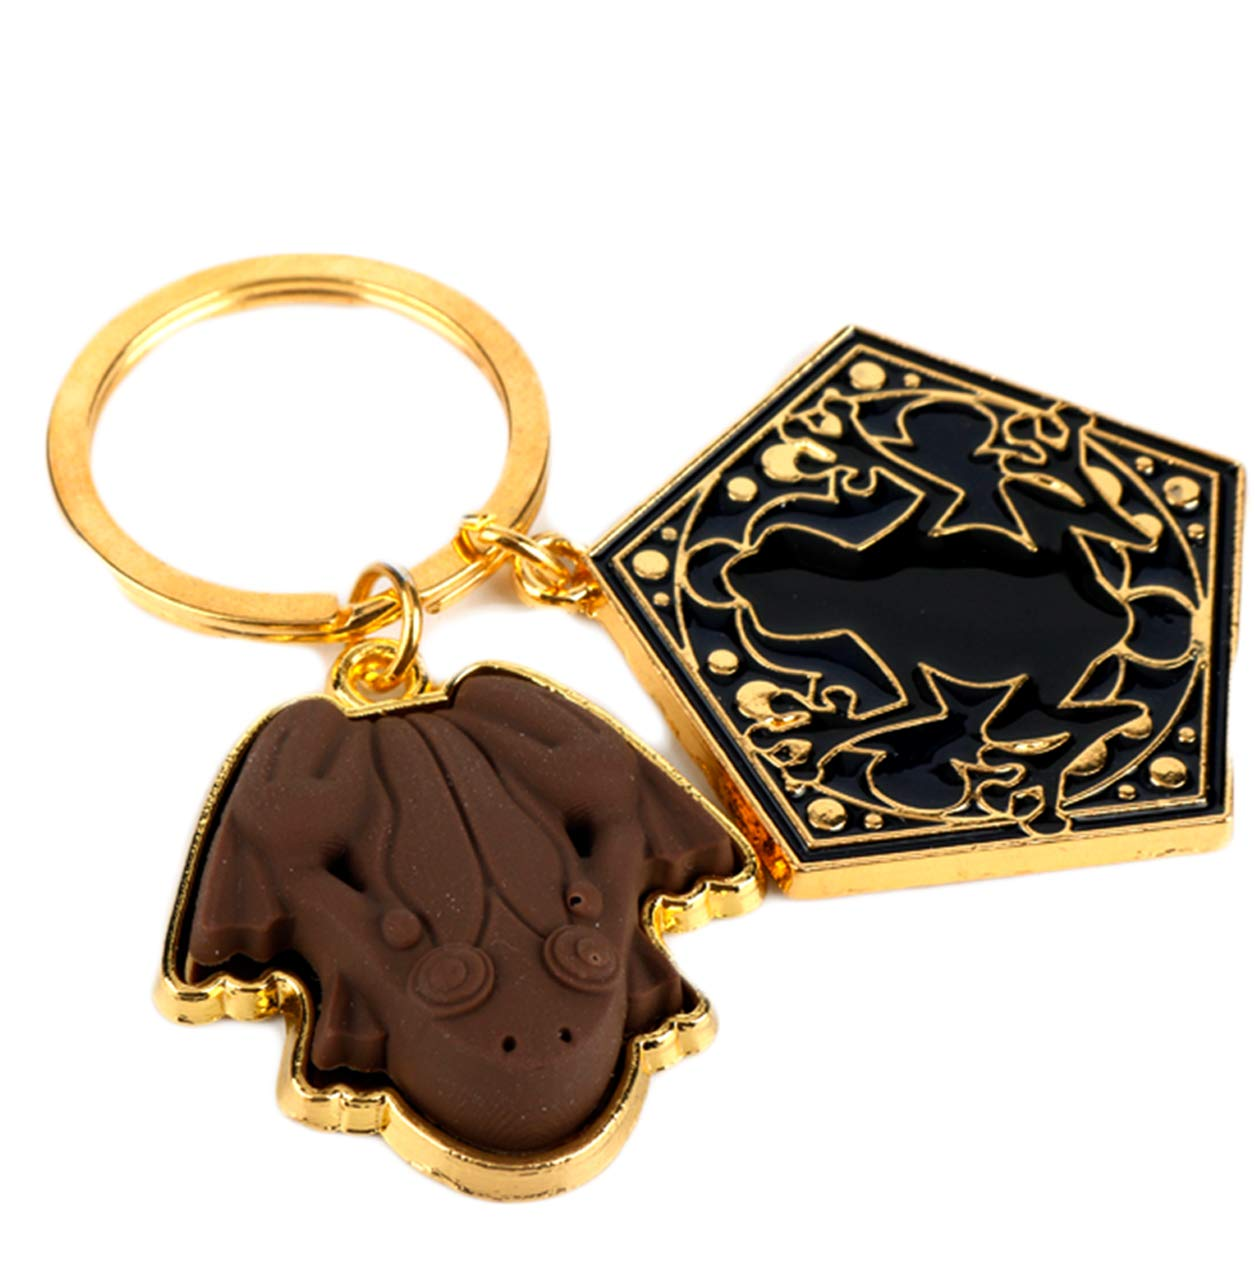 Deathly Hallows Keychain H P inspired charm Key ring